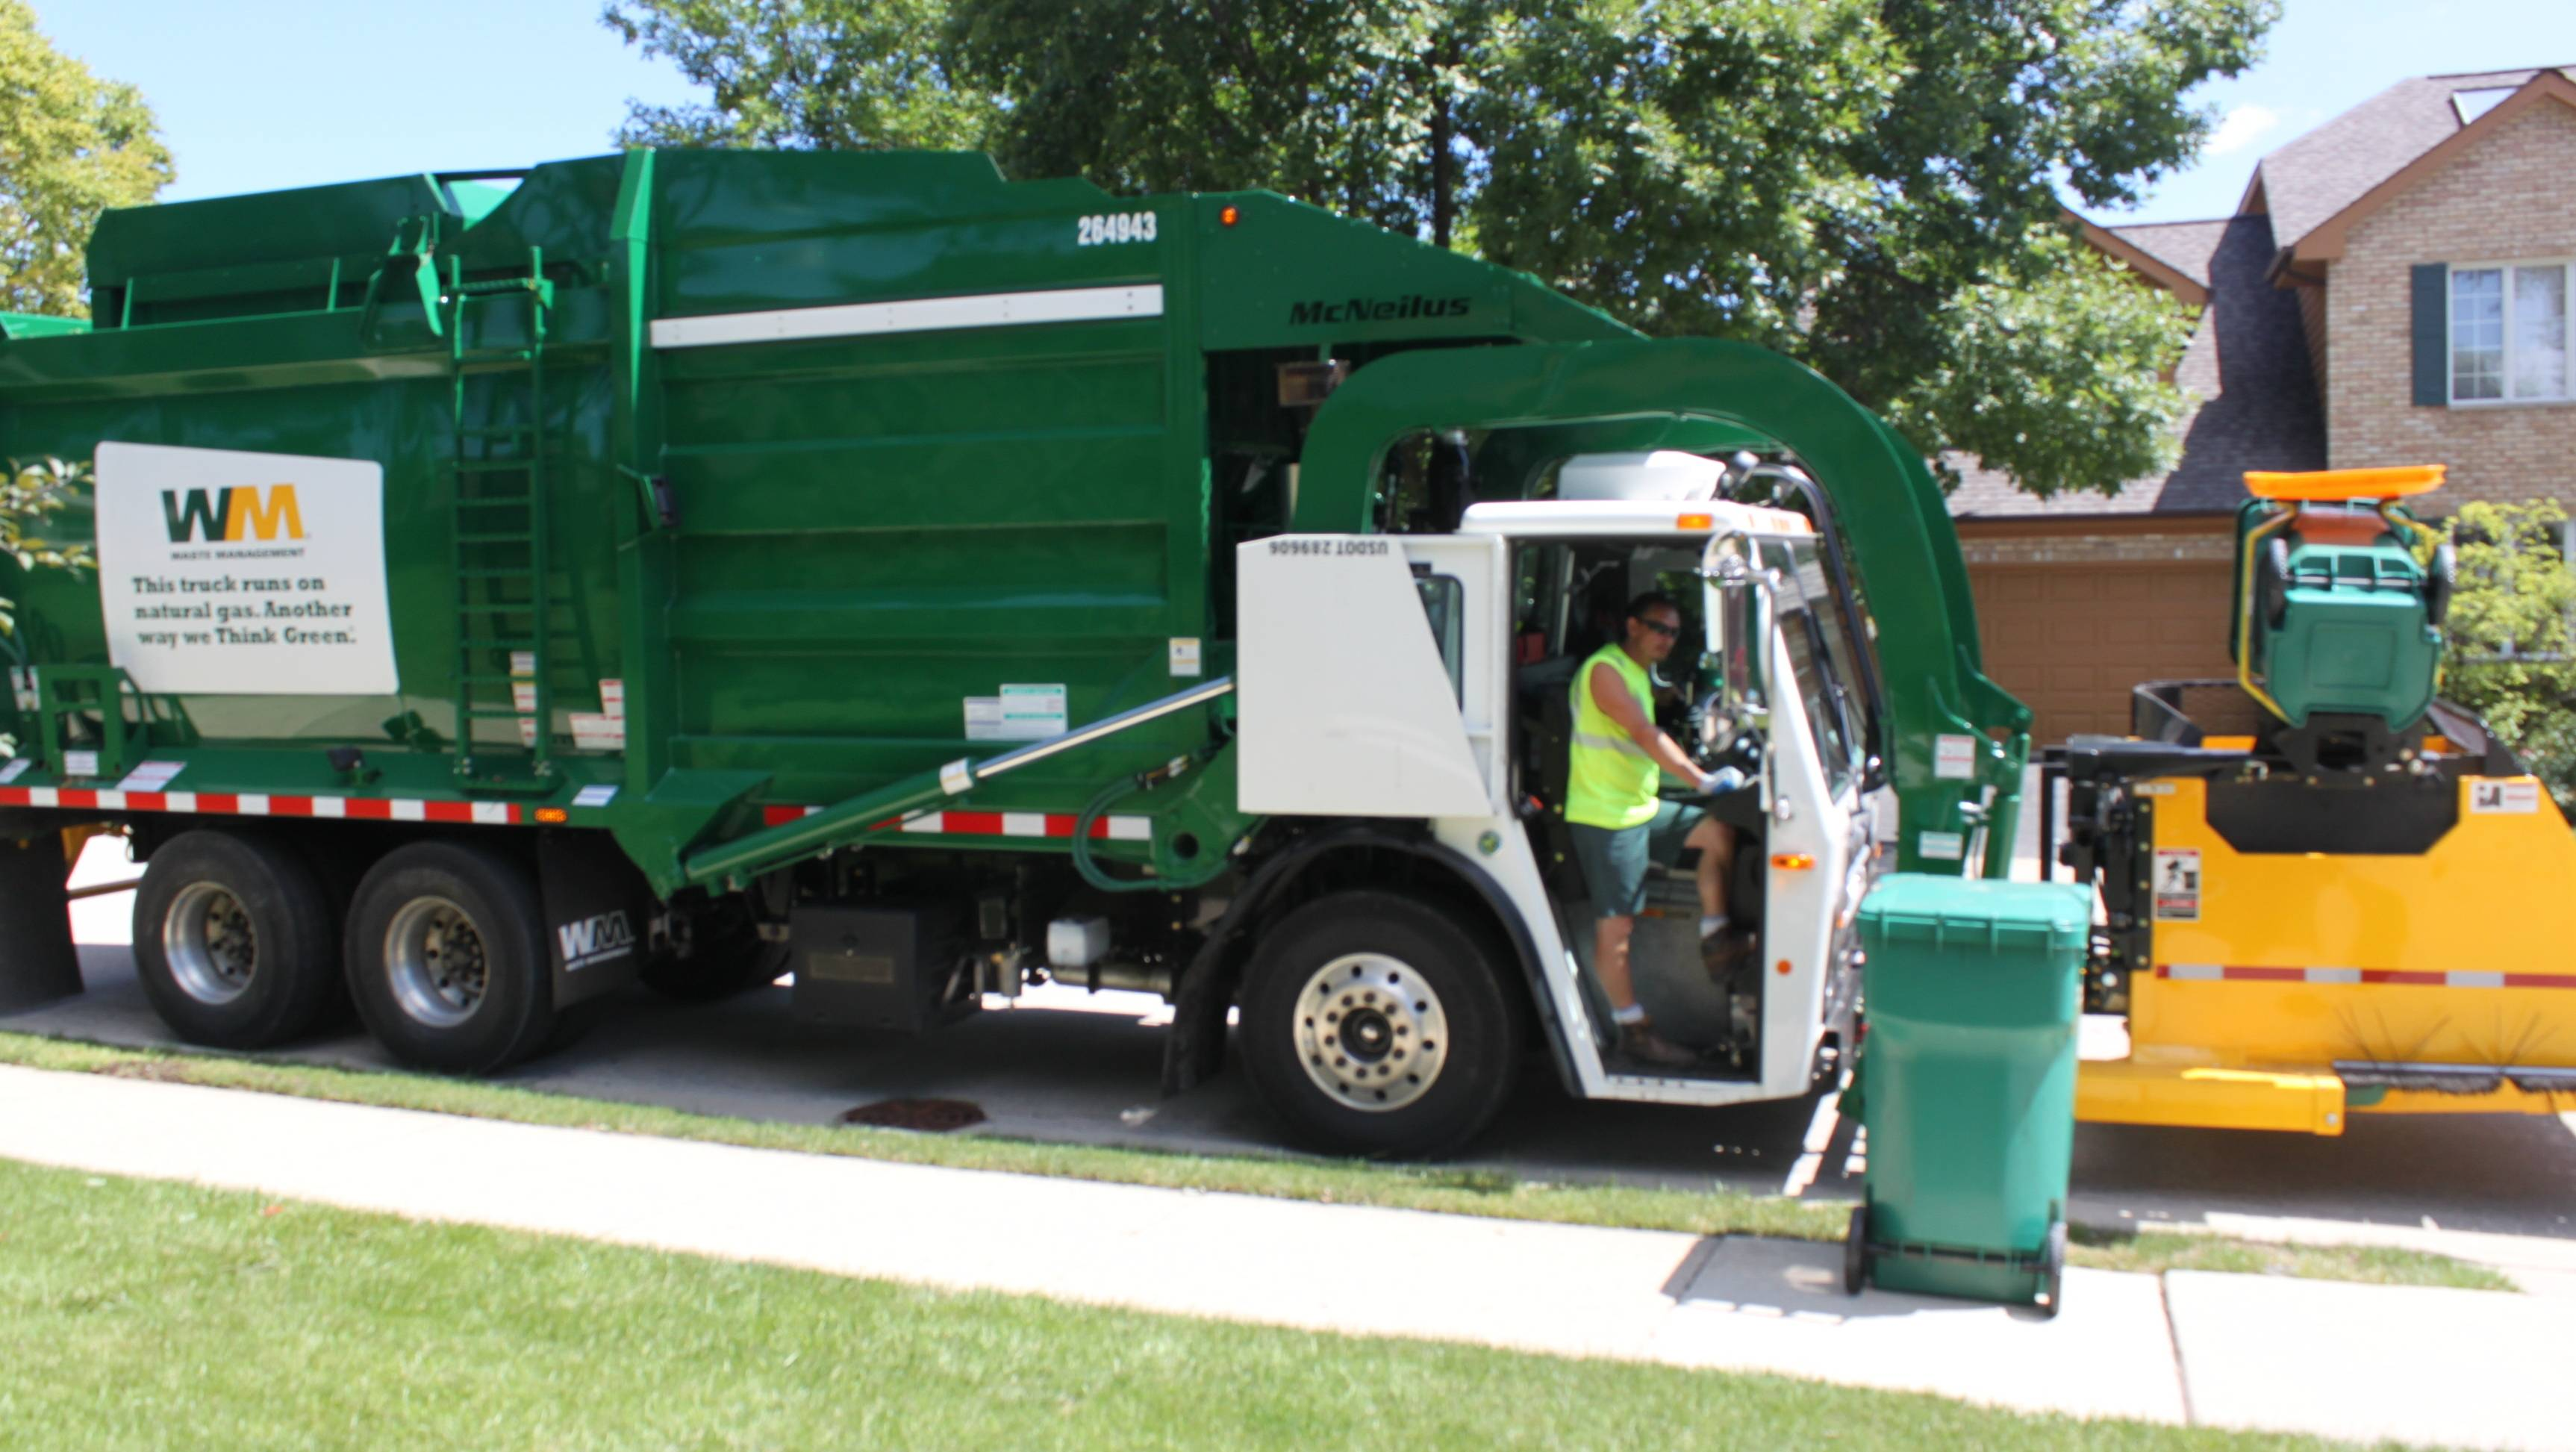 Children are fascinated by garbage trucks and how they work, but for safety's sake Waste Management asks parents to keep children a safe distance as trucks come down their streets.